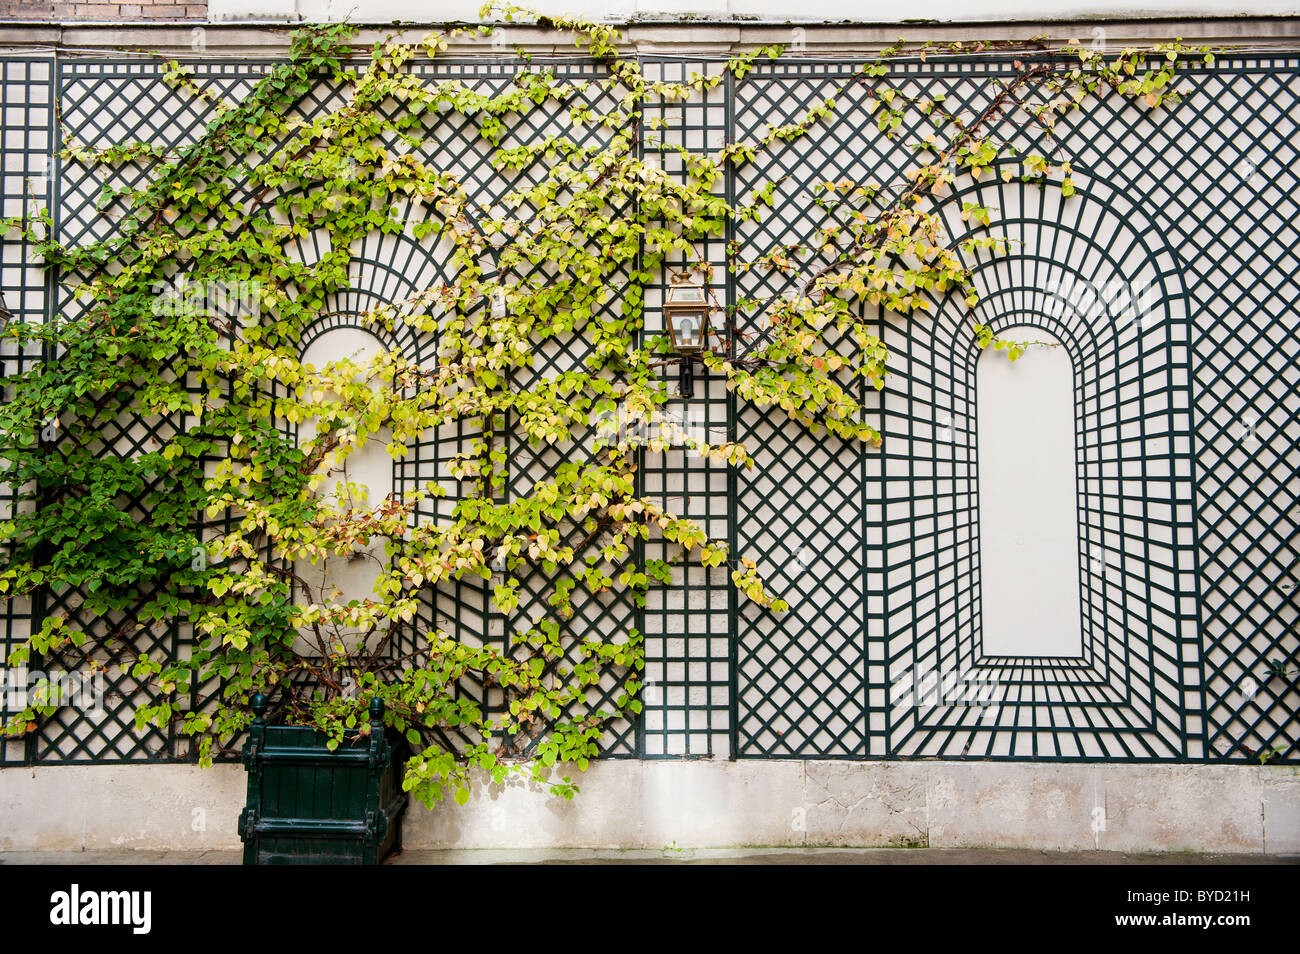 Wall with rack for plants in 9th arrondissement in Paris - Stock Image